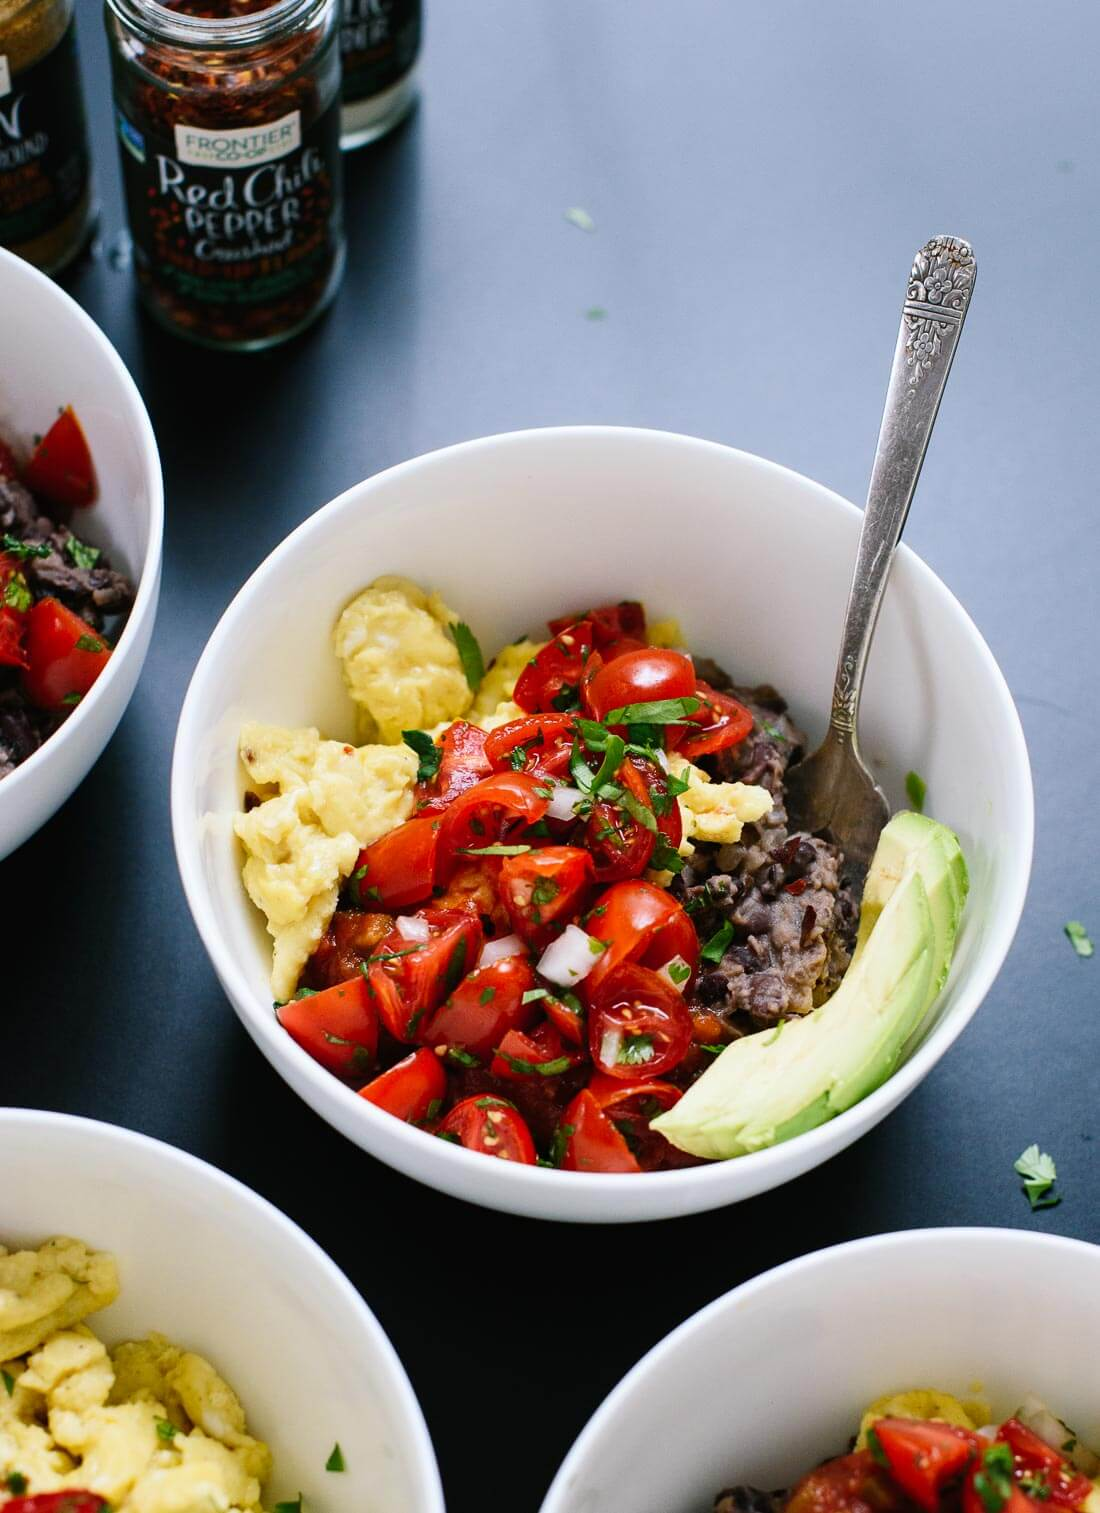 Delicious breakfast bowls made with scrambled eggs, black beans, pico de gallo and sliced avocado! cookieandkate.com